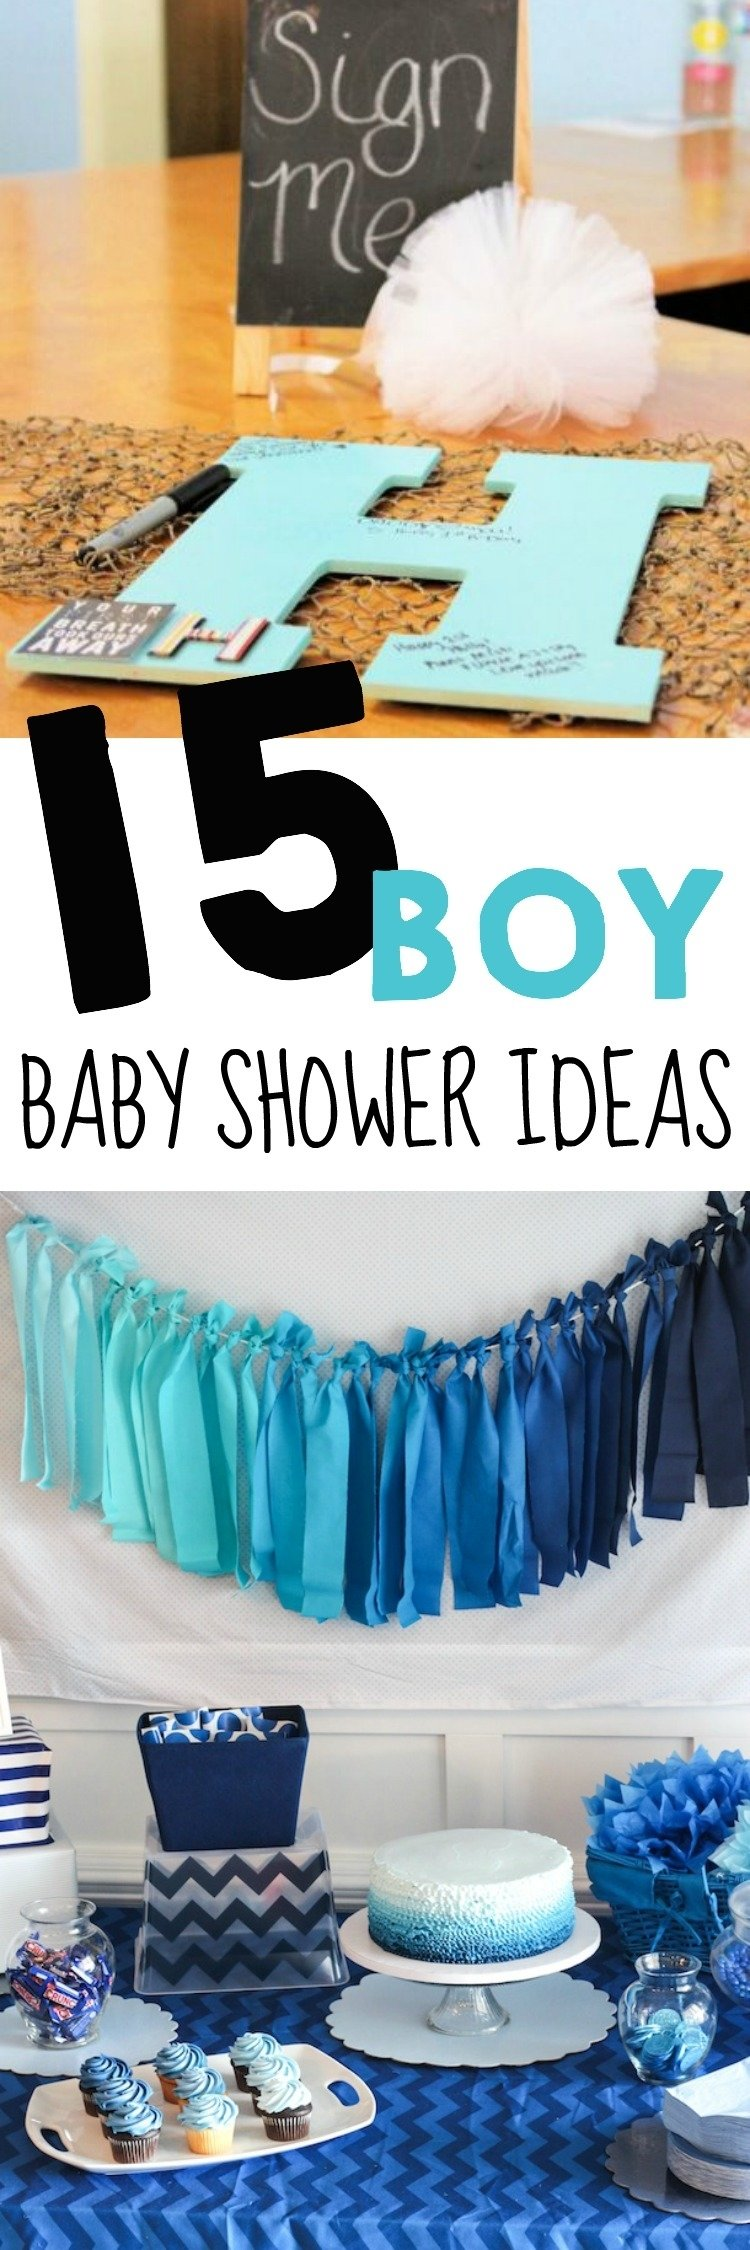 10 Great Ideas For Baby Boy Shower 15 baby shower ideas for boys the realistic mama 8 2020